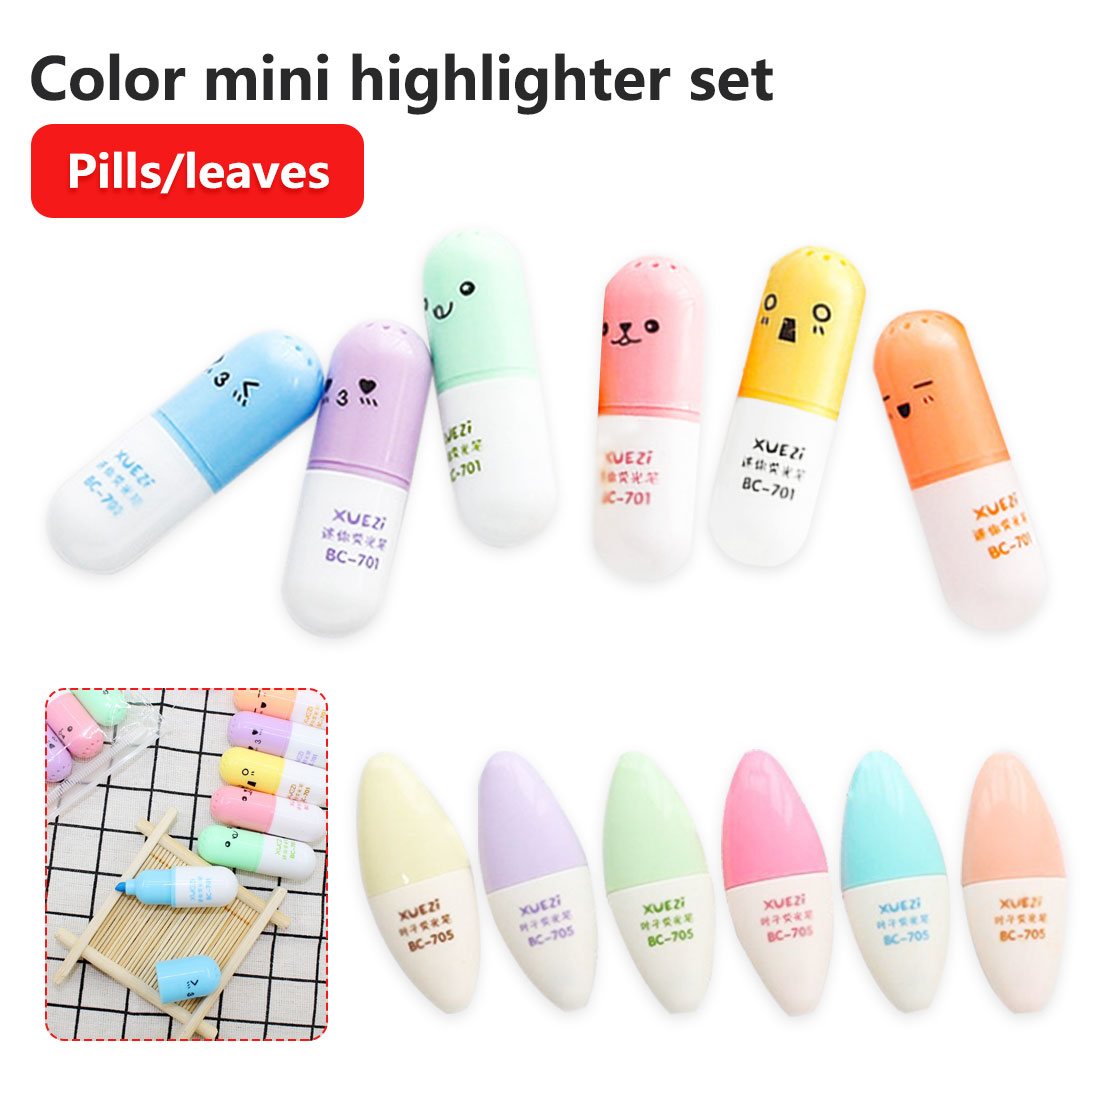 6 Pcs Capsules Styling Highlighter Vitamin Office Stationery School Supplies Pill Highlight Marker Color Pens